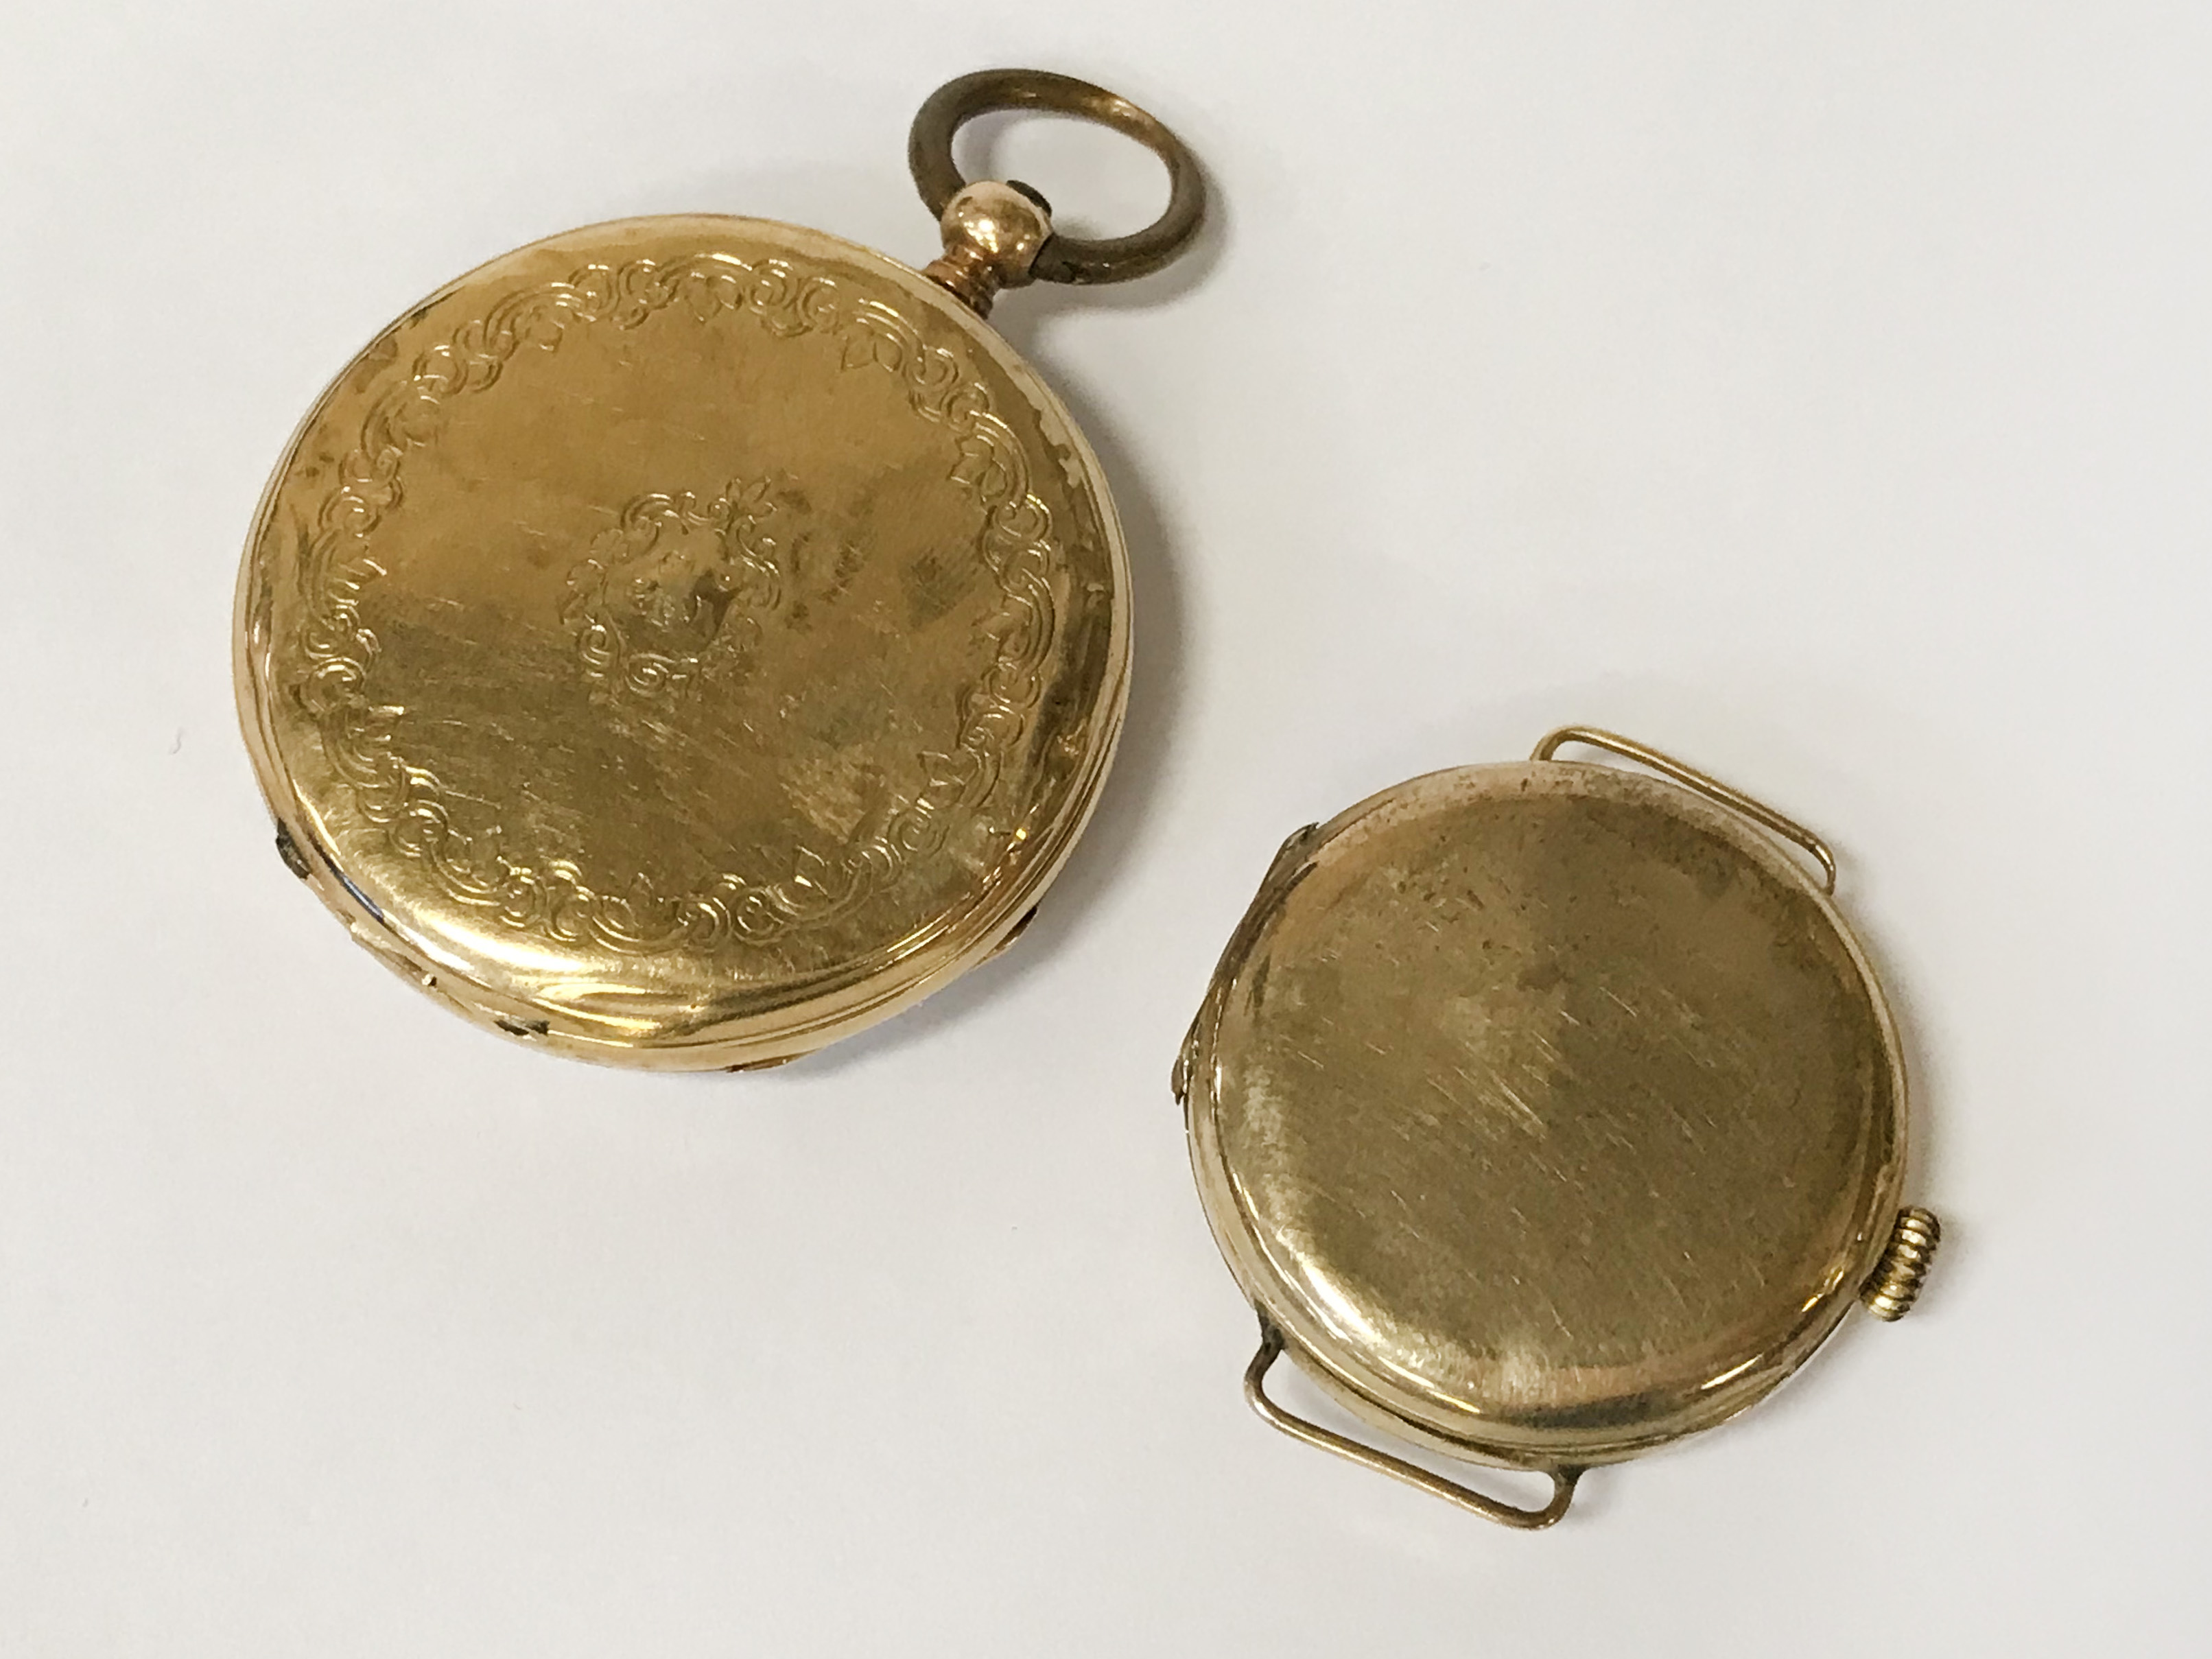 TWO GOLD WATCHES - Image 2 of 2